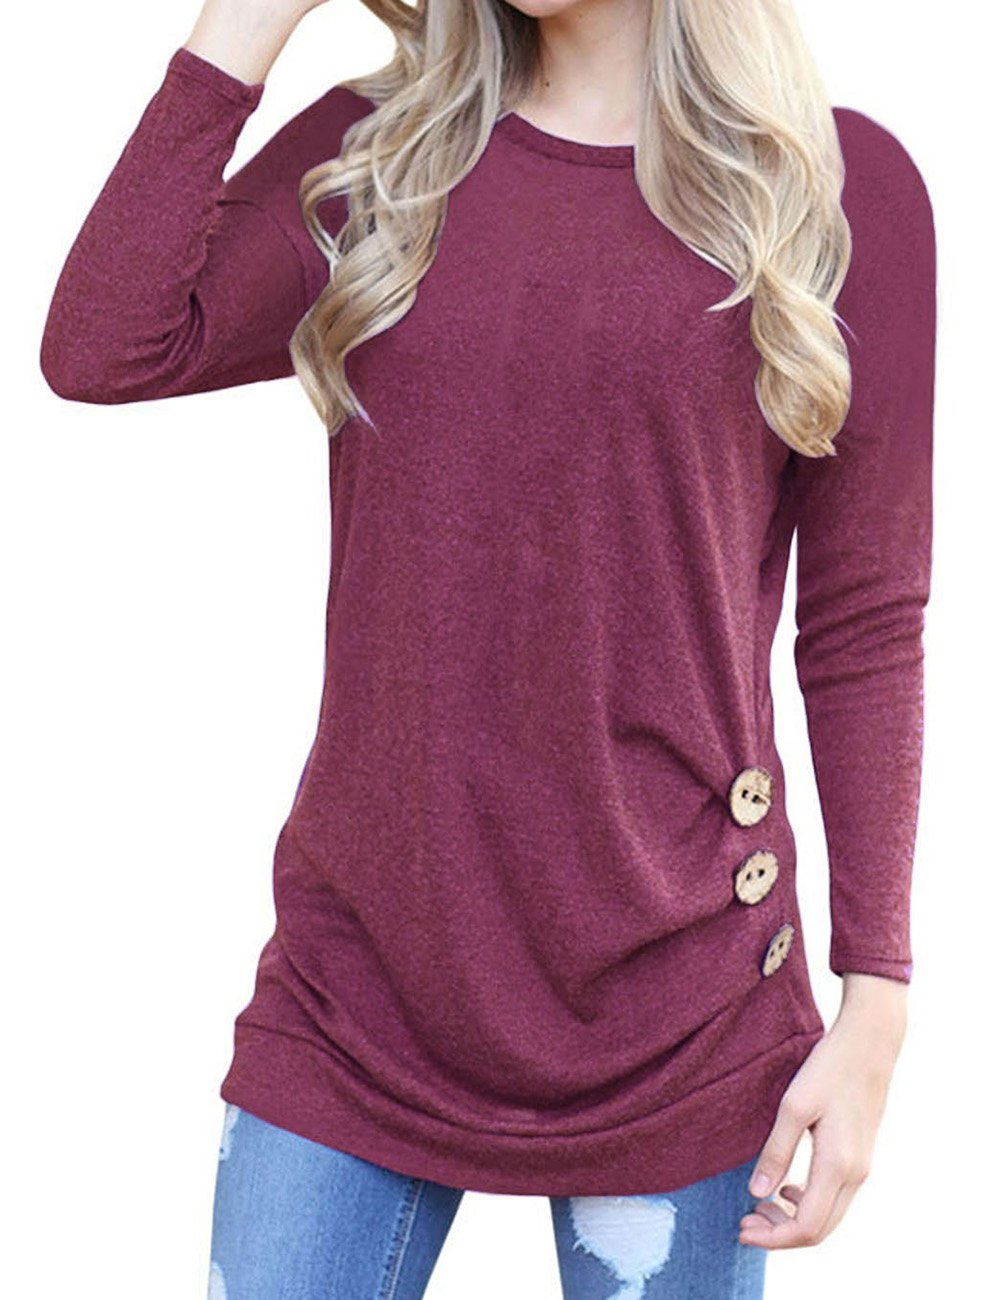 Simaier Women Loose Casual T Shirt Plain Cotton Round Neck Girls Tops JXX0020